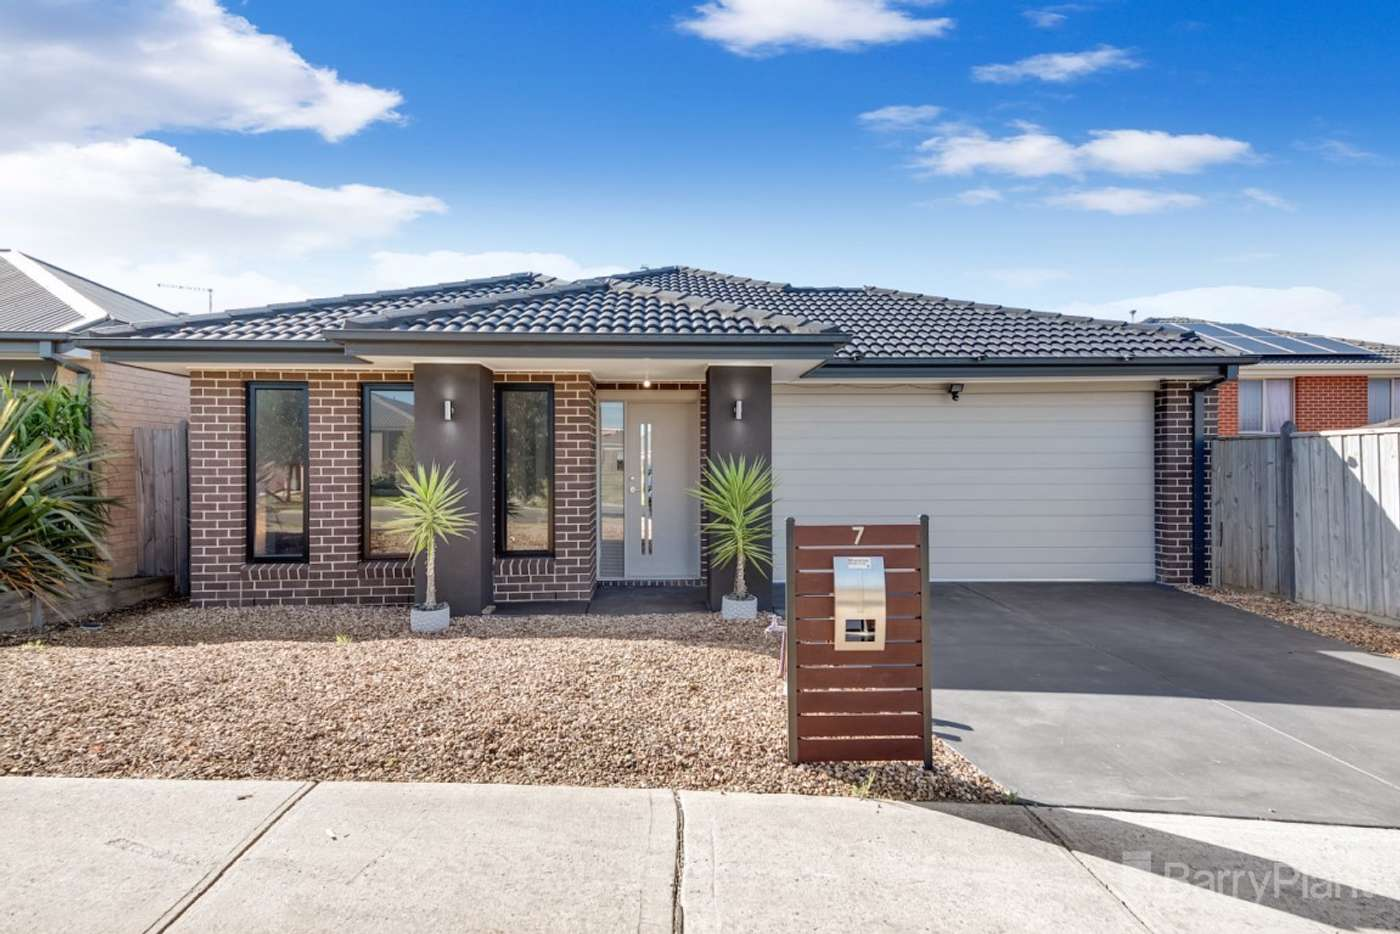 Main view of Homely house listing, 7 Embling Street, Pakenham VIC 3810